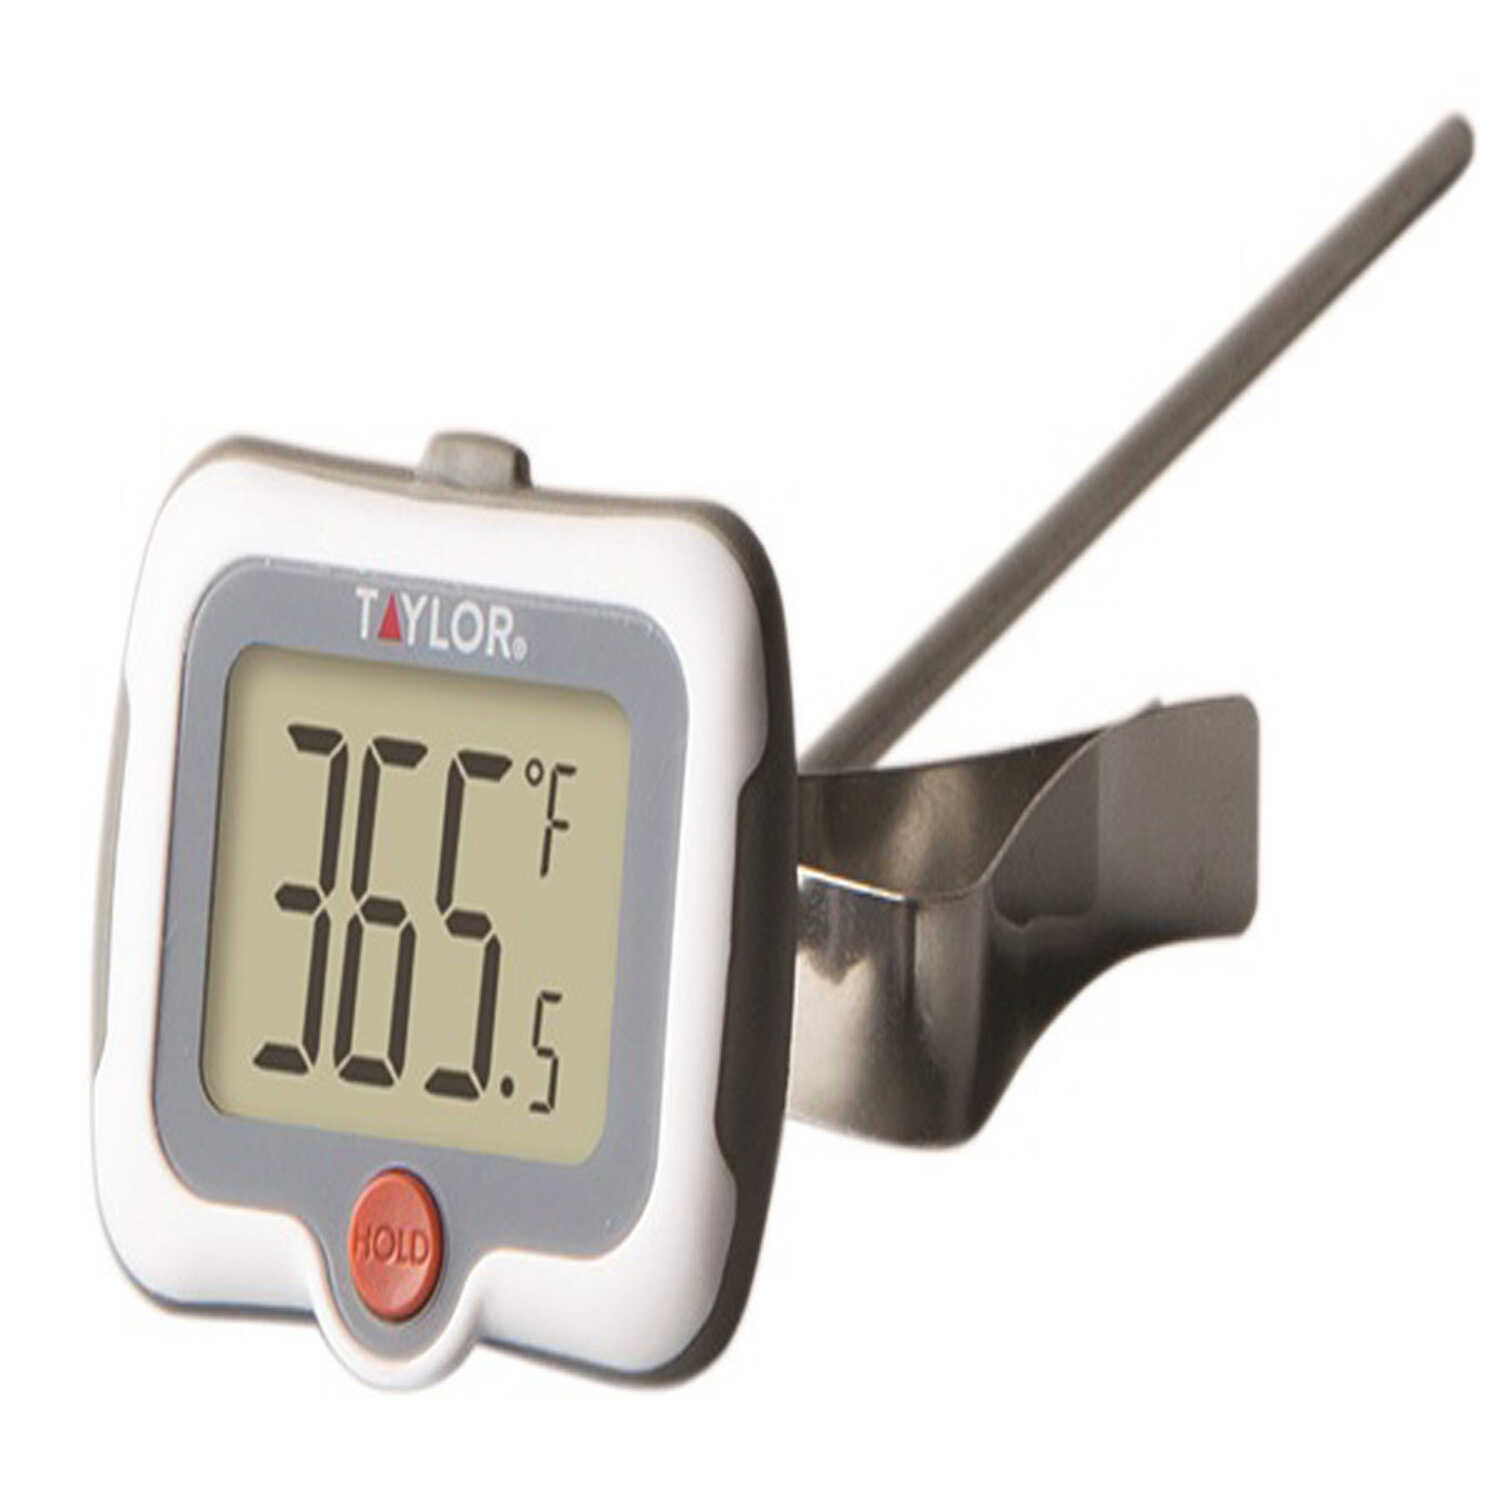 Taylor  Instant Read Digital  C Candy Thermometer